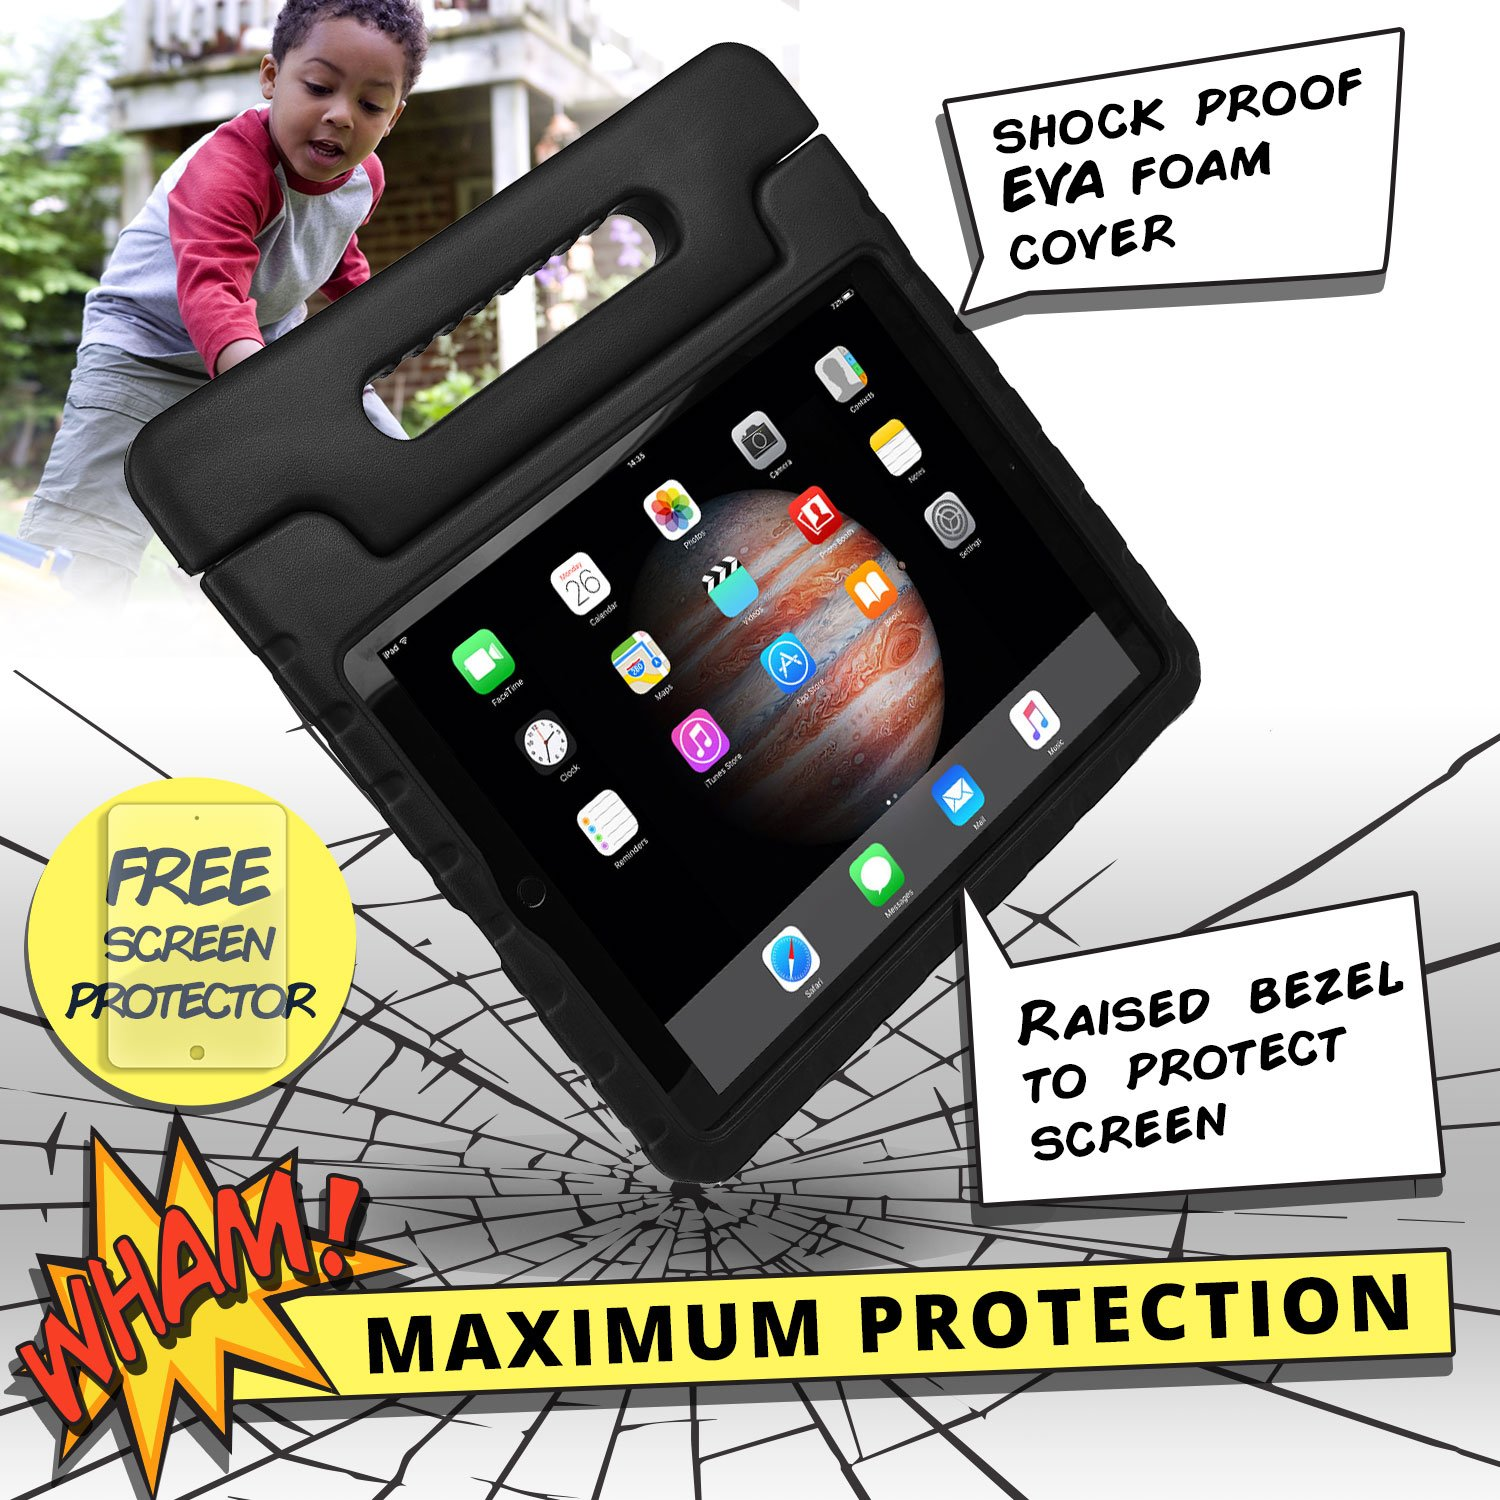 COOPER DYNAMO Shock Proof Kids case compatible with iPad Pro 12.9 | Heavy Duty Kidproof Cover for Kids | Girls, Boys, School | Kid Friendly Handle & Stand, Screen Protector | Apple A1584 A1652 (Black) by Cooper Cases (Image #4)